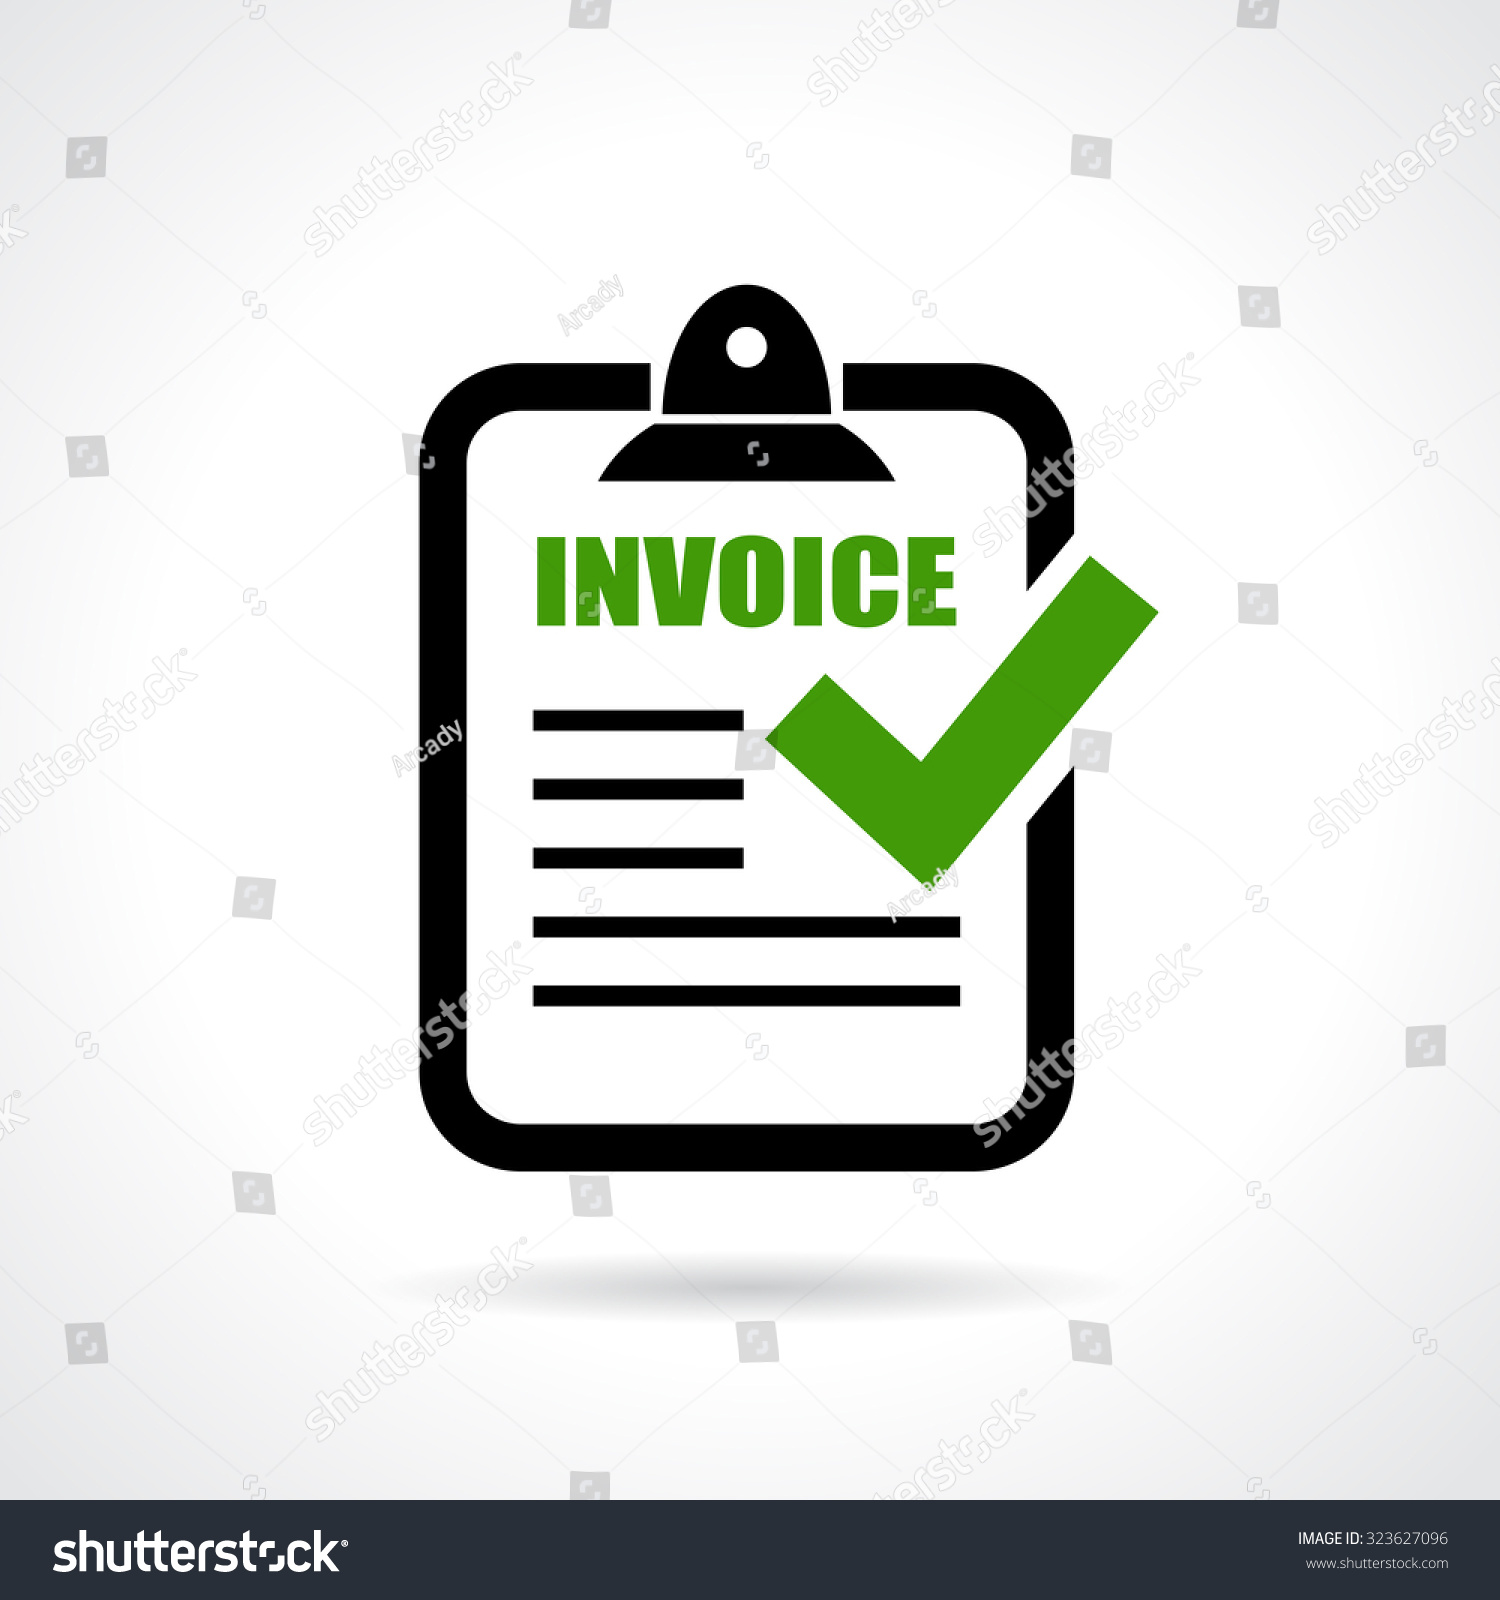 invoice icon stock vector 323627096 shutterstock. Black Bedroom Furniture Sets. Home Design Ideas